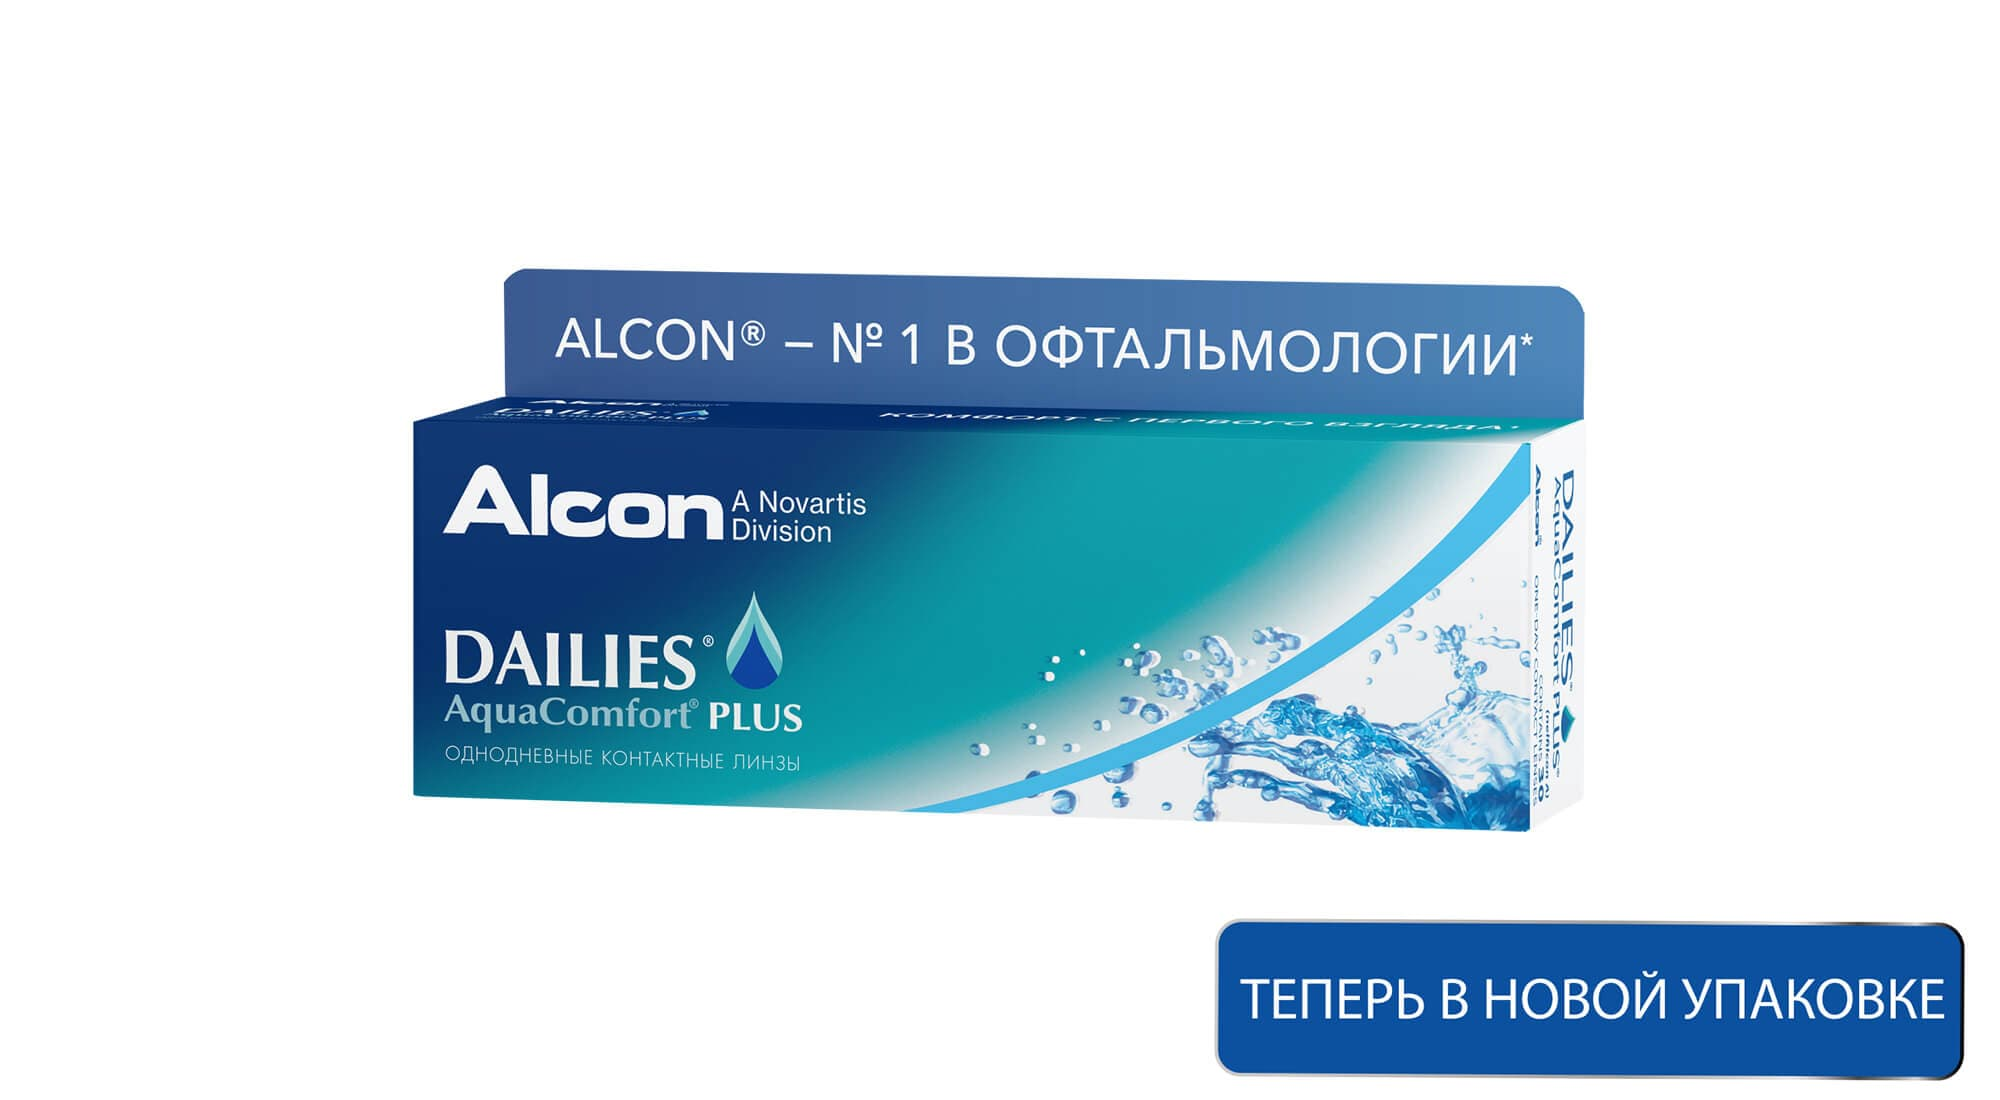 Контактные линзы DAILIES AQUACOMFORT PLUS (30 ЛИНЗ)